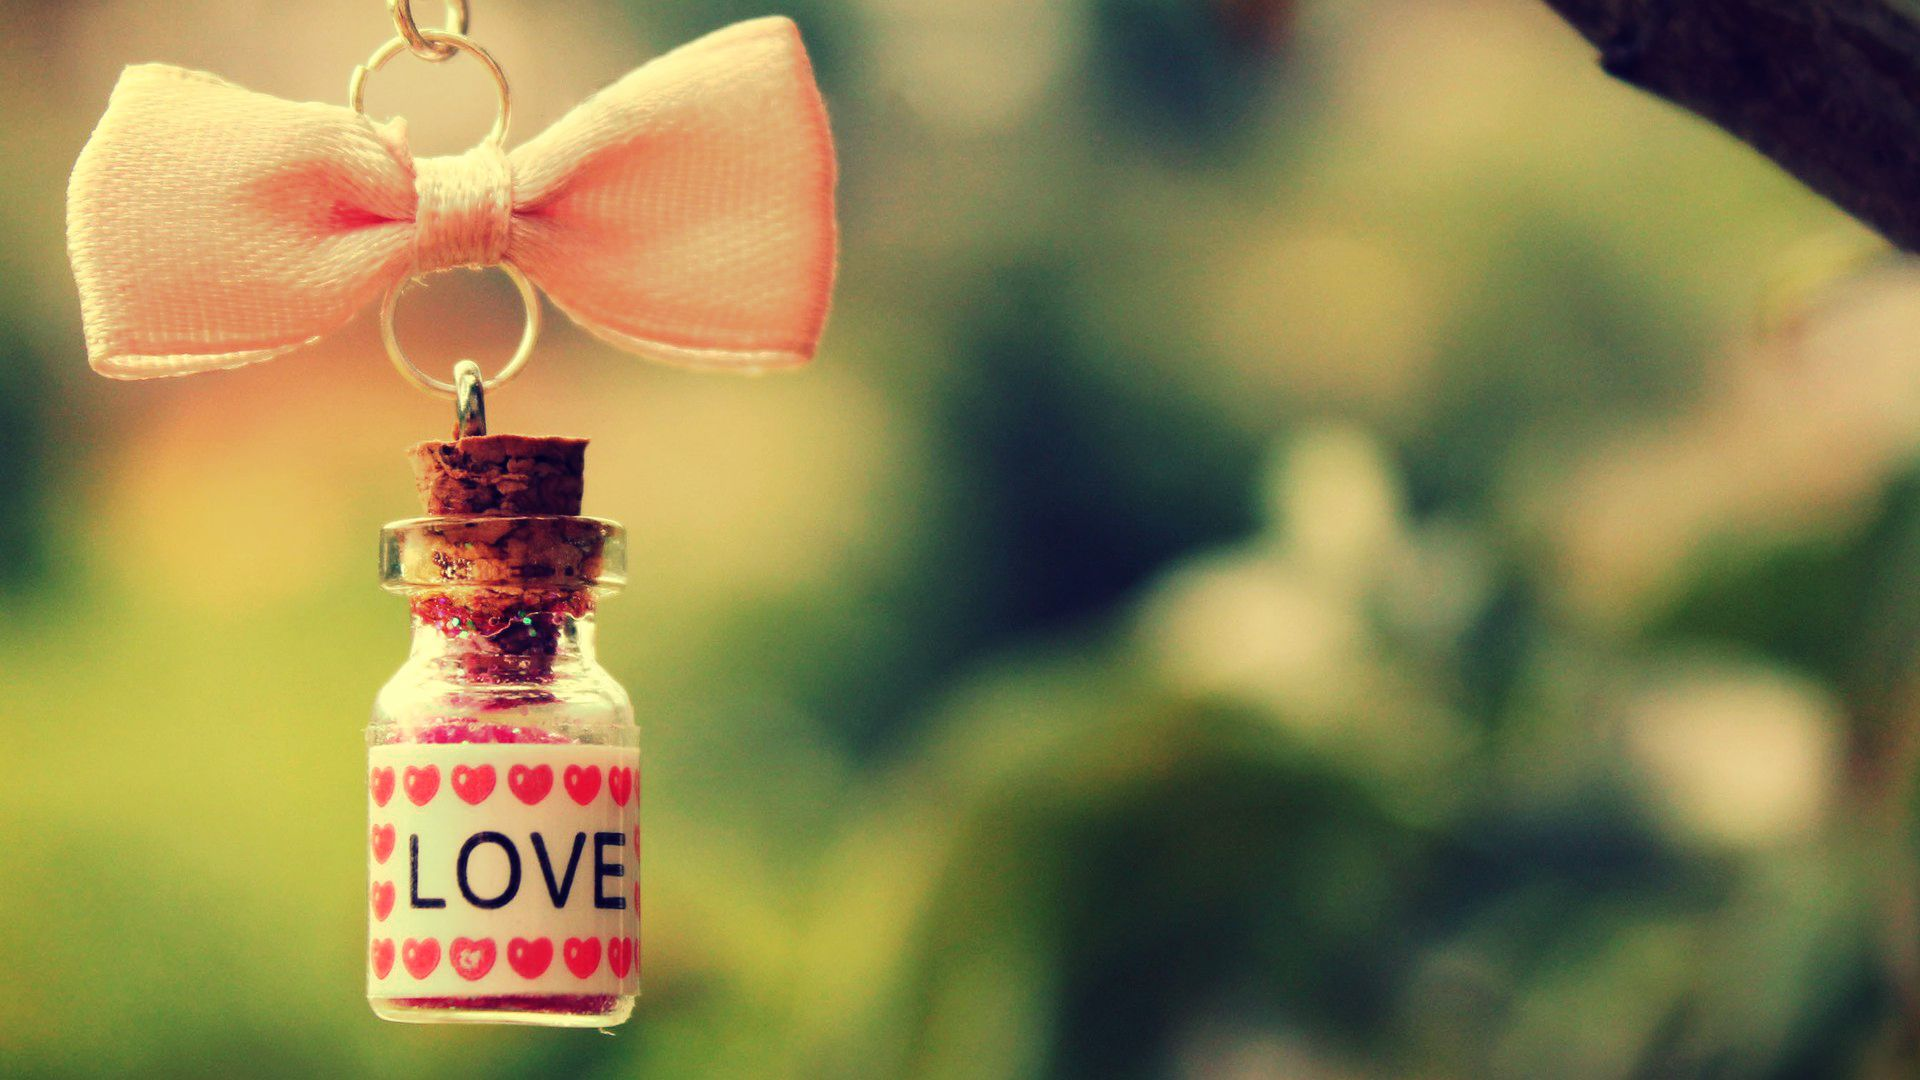 Love Key Wallpaper Hd : Box Key Heart Mood wallpaper 1680x1050 #27916